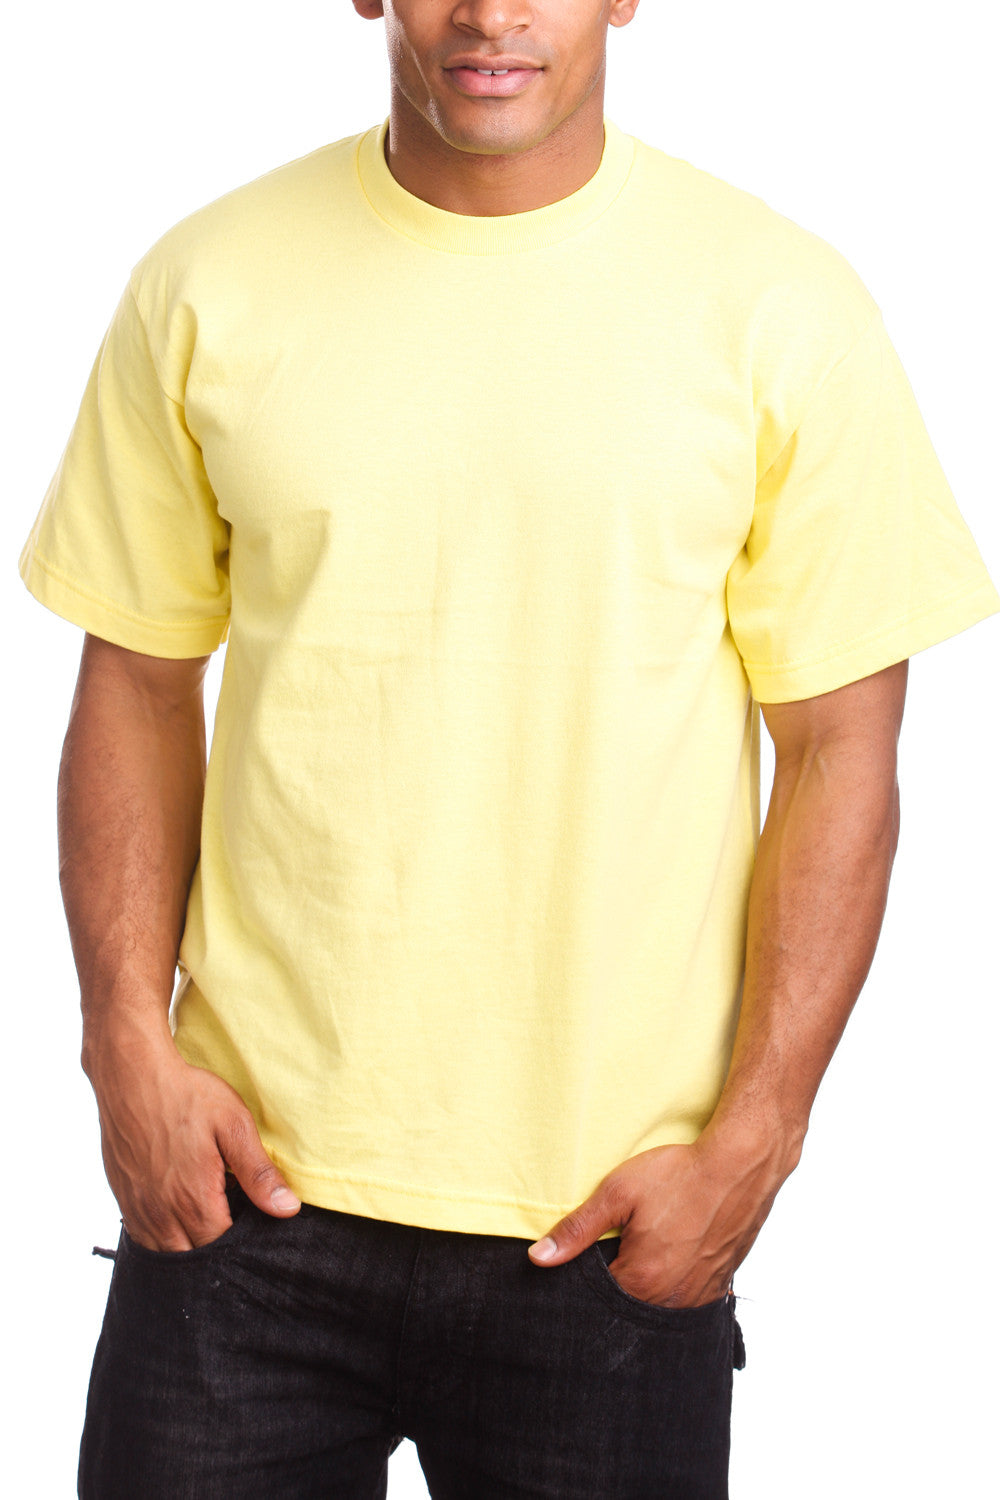 Athletic Fit Yellow T-Shirts Activewear Tee Shirts